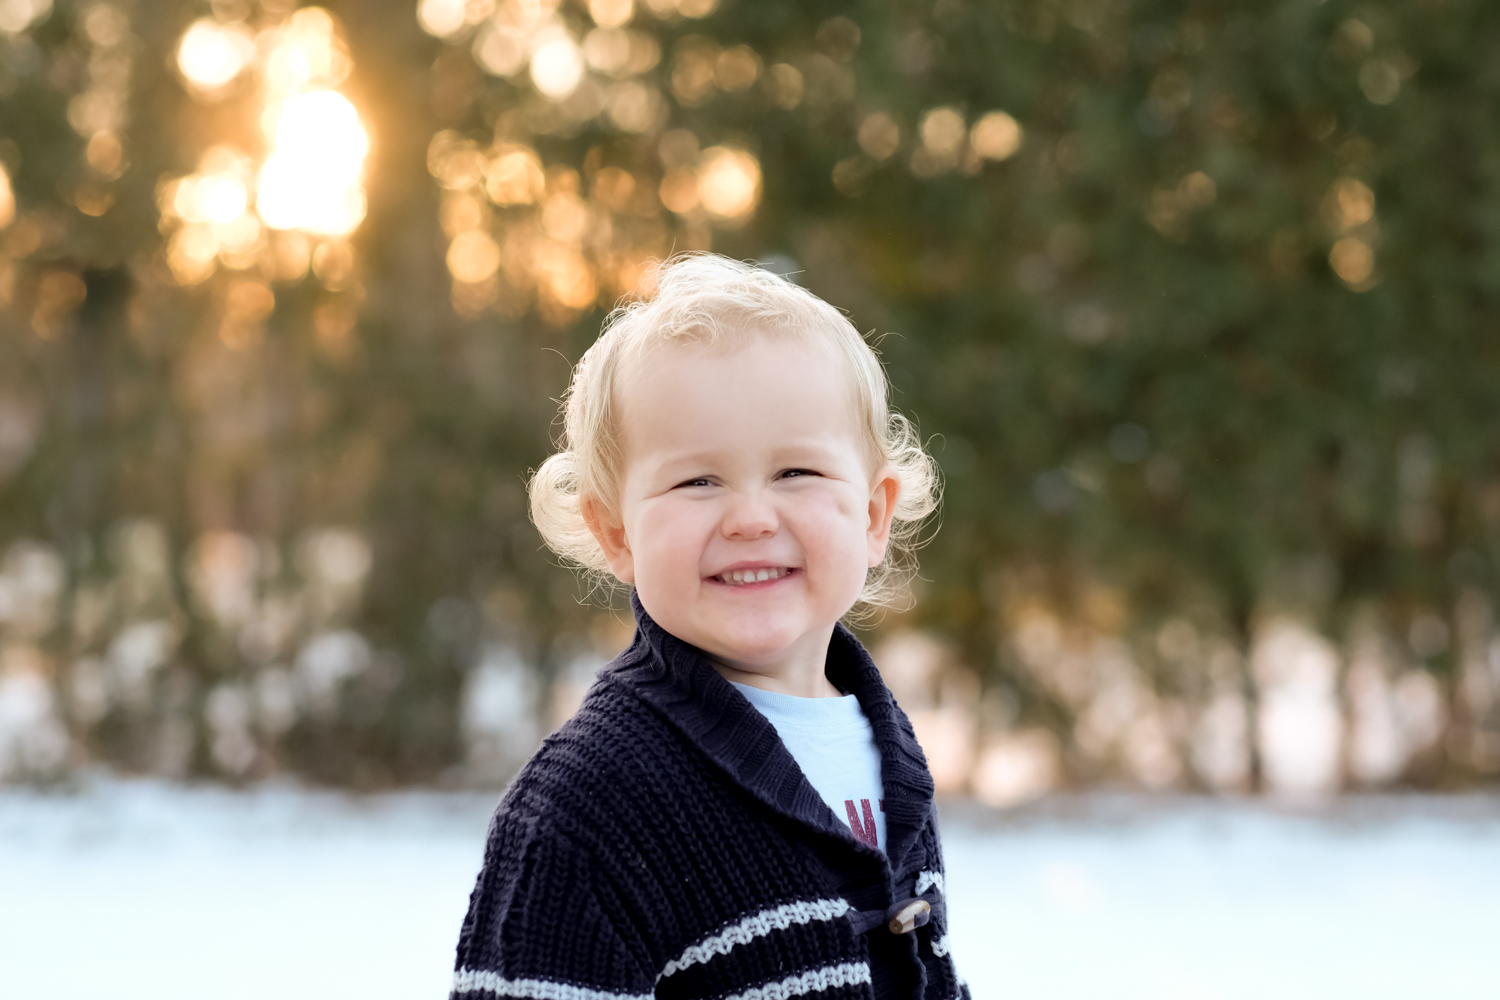 https://i0.wp.com/digital-photography-school.com/wp-content/uploads/2019/12/Christmas-portrait-locations-2.jpg?resize=1500%2C1000&ssl=1